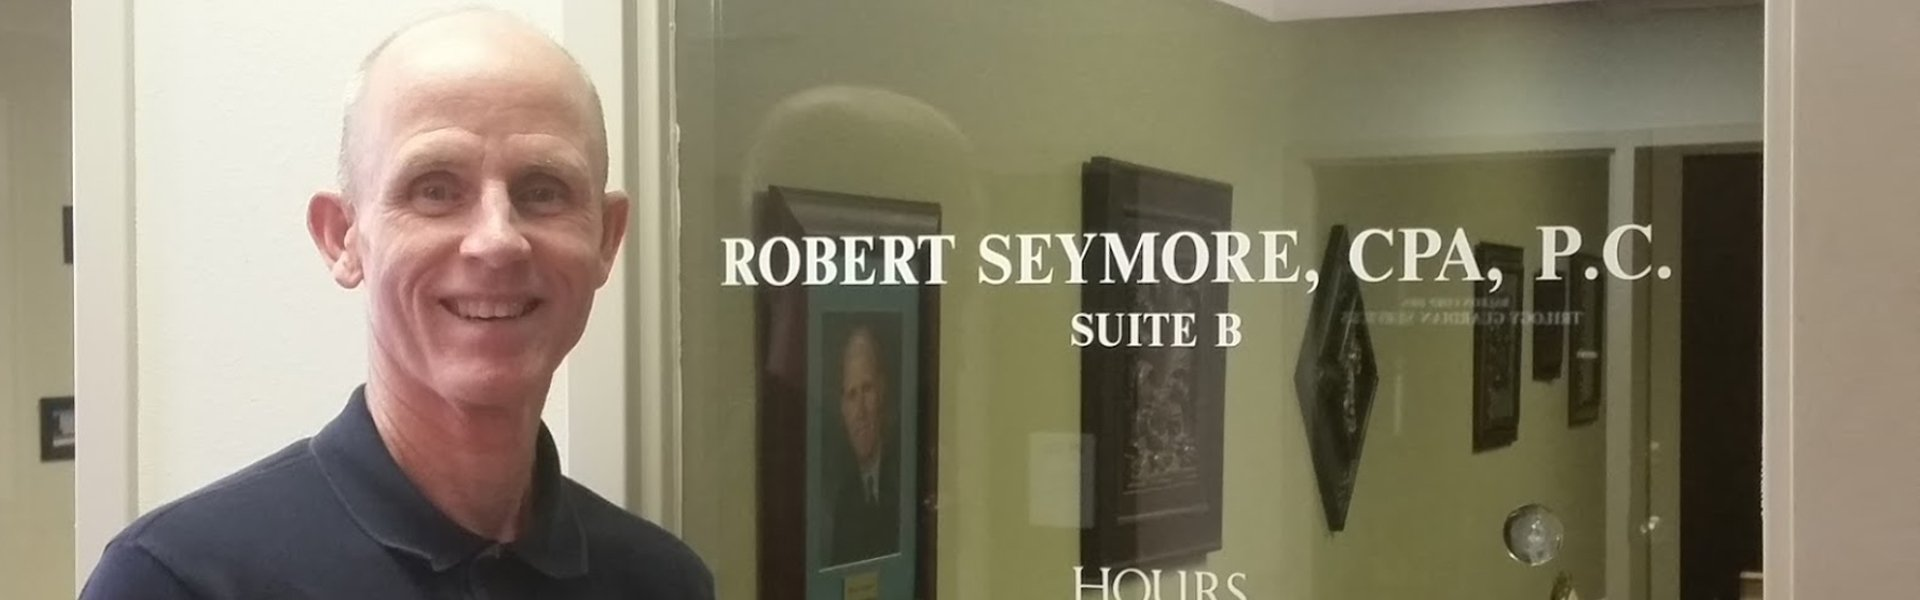 Robert D. Seymore